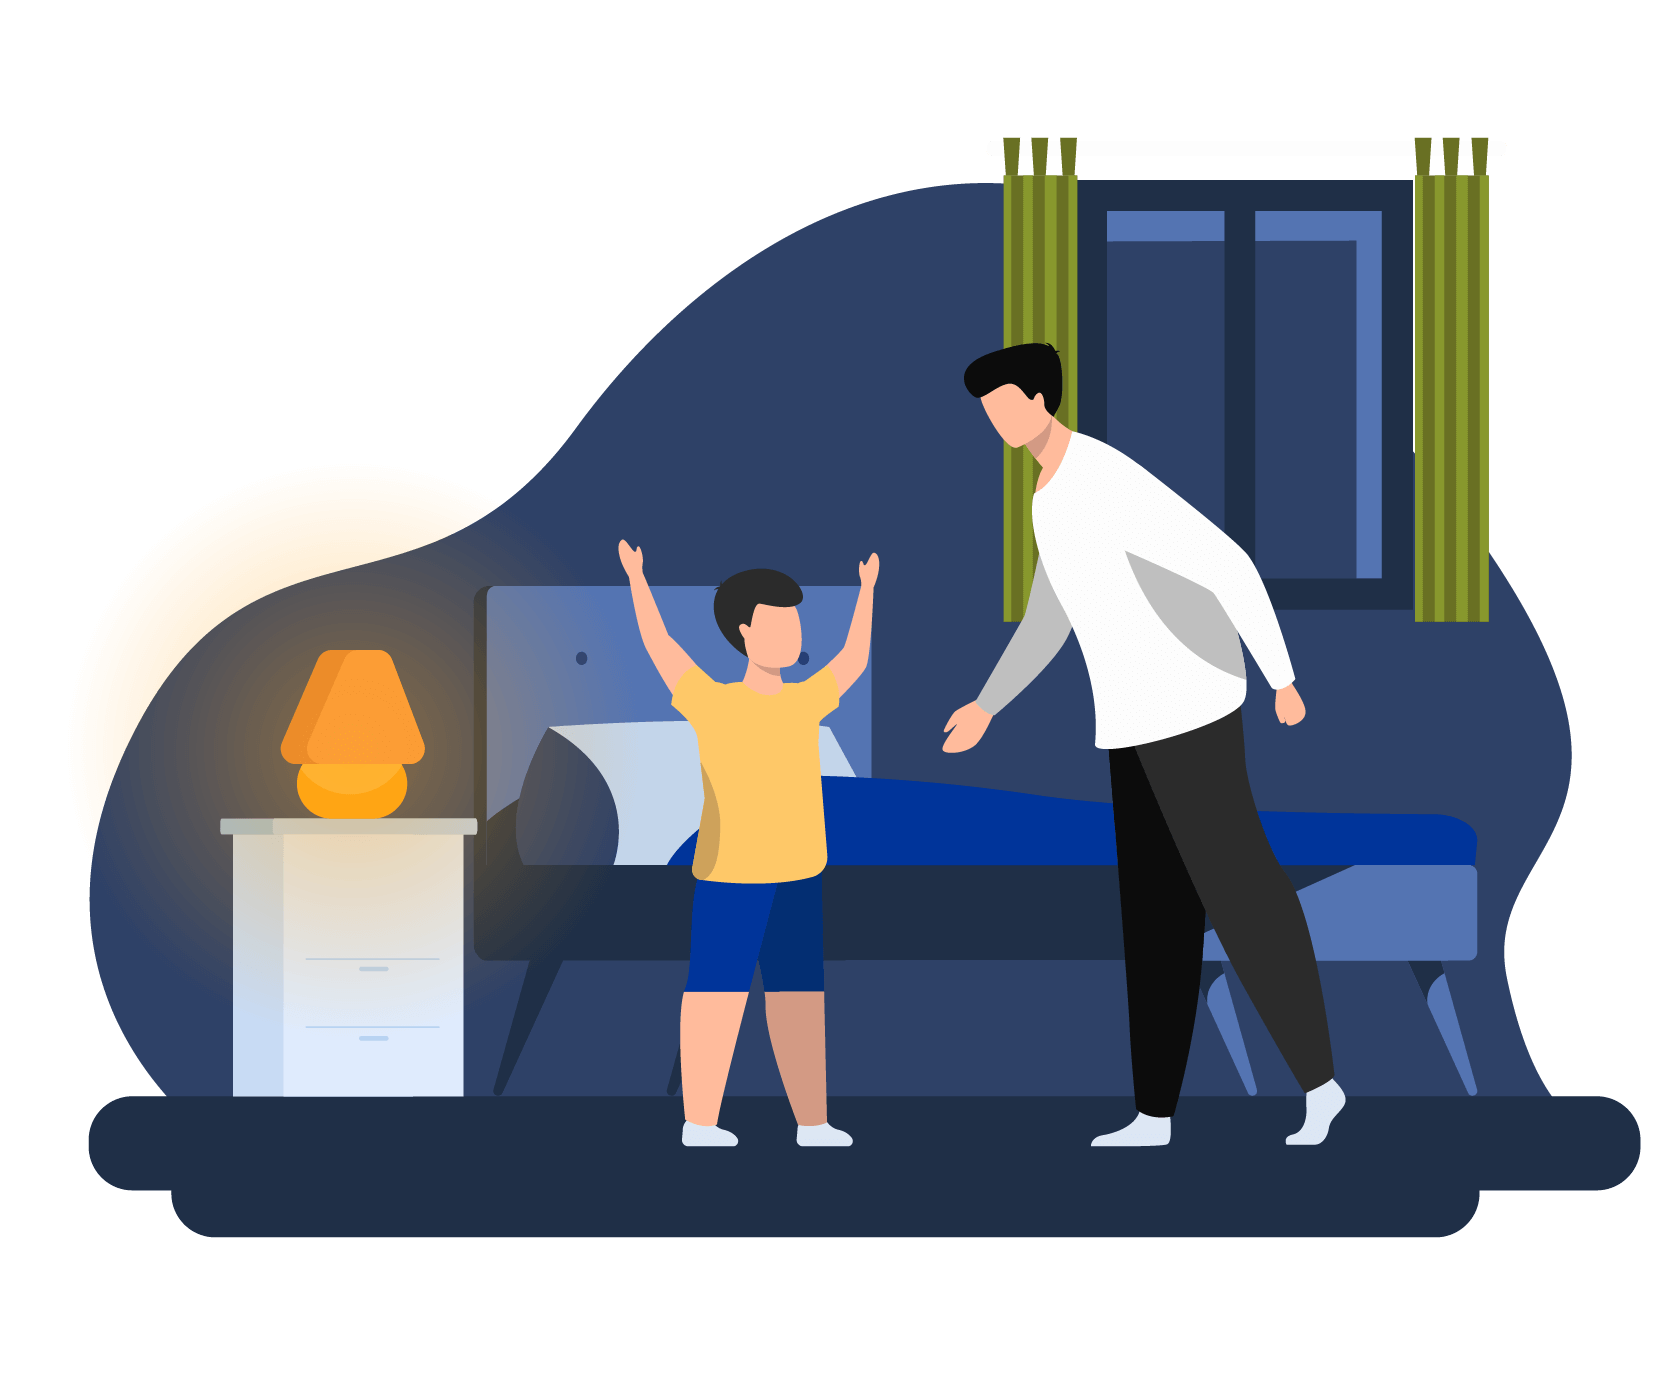 A Quick Guide to Bedroom Safety for All Ages